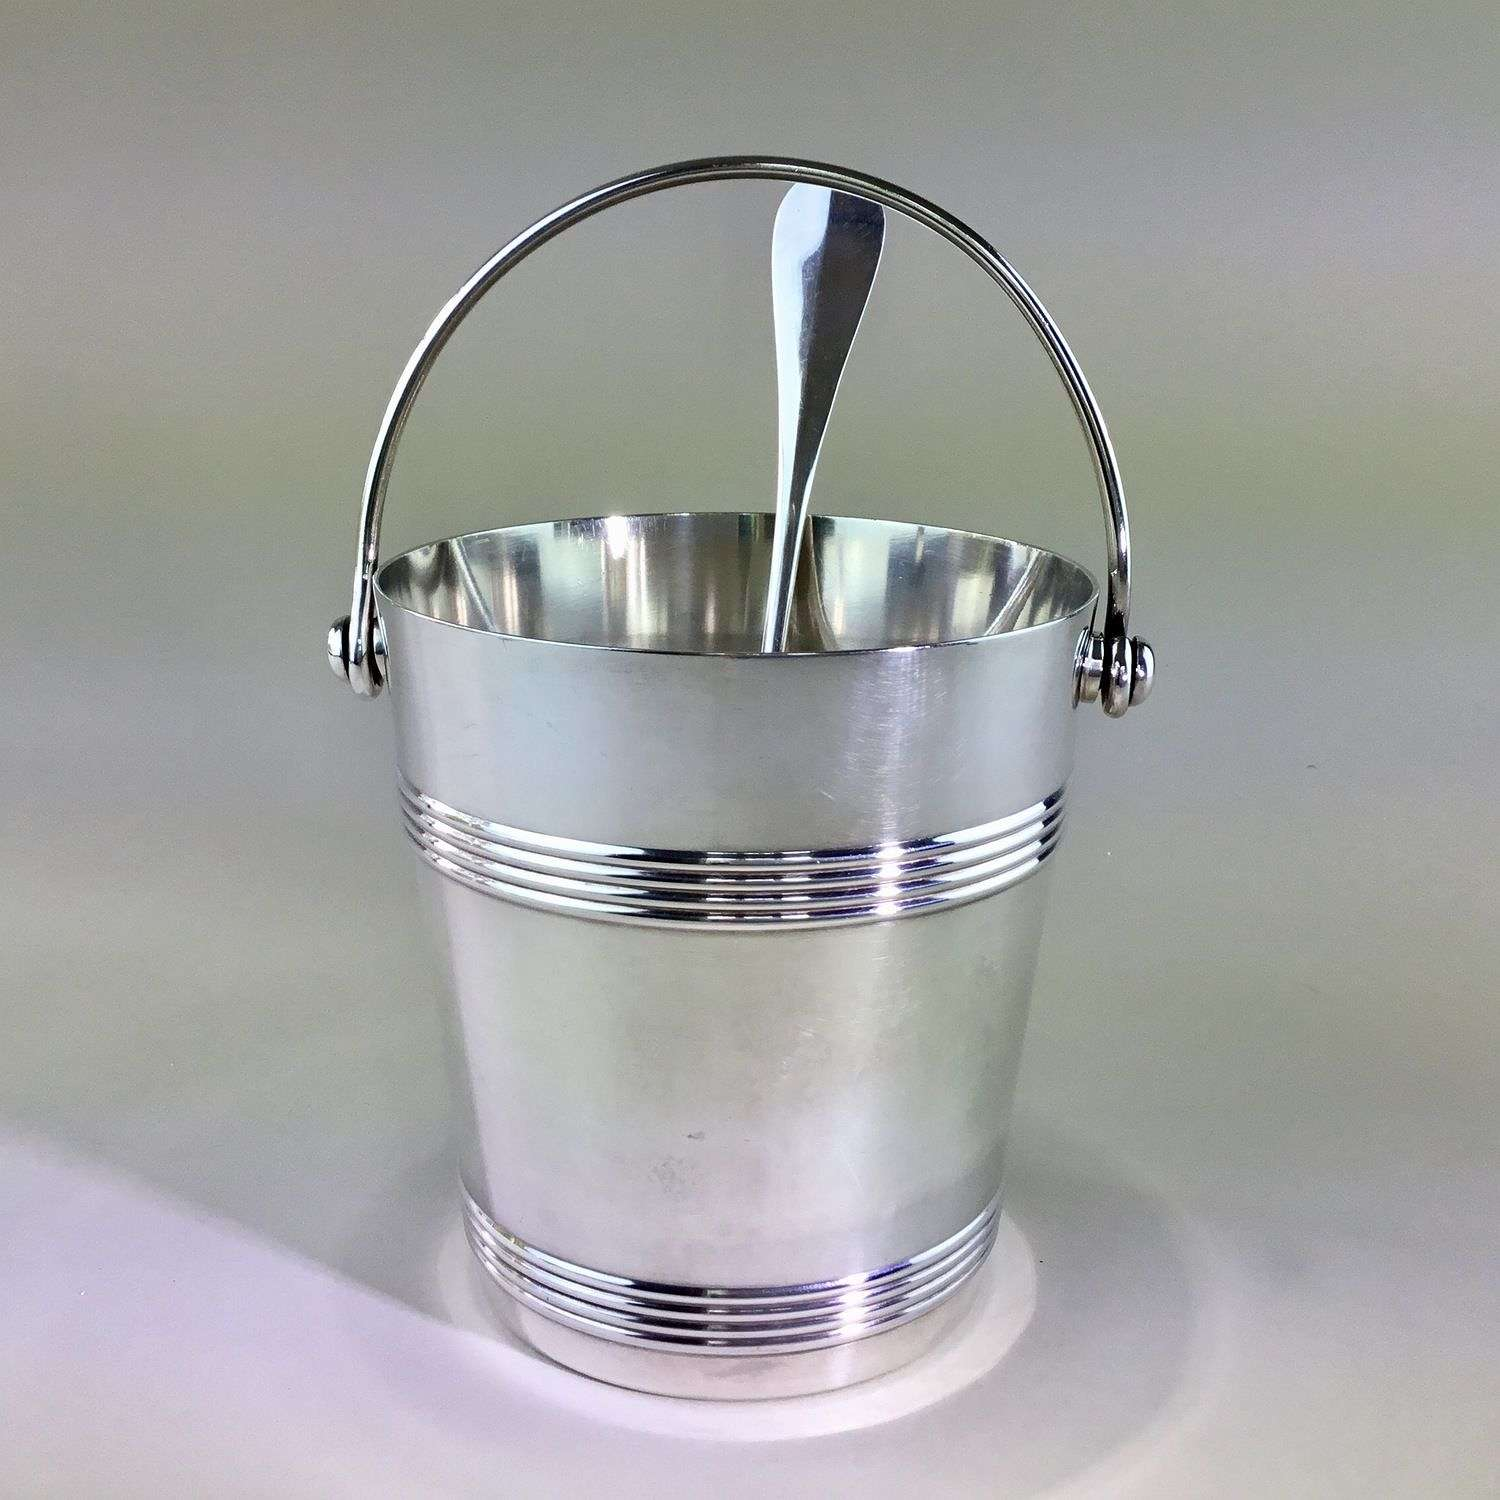 Christofle Gallia silver plated ice bucket and spoon